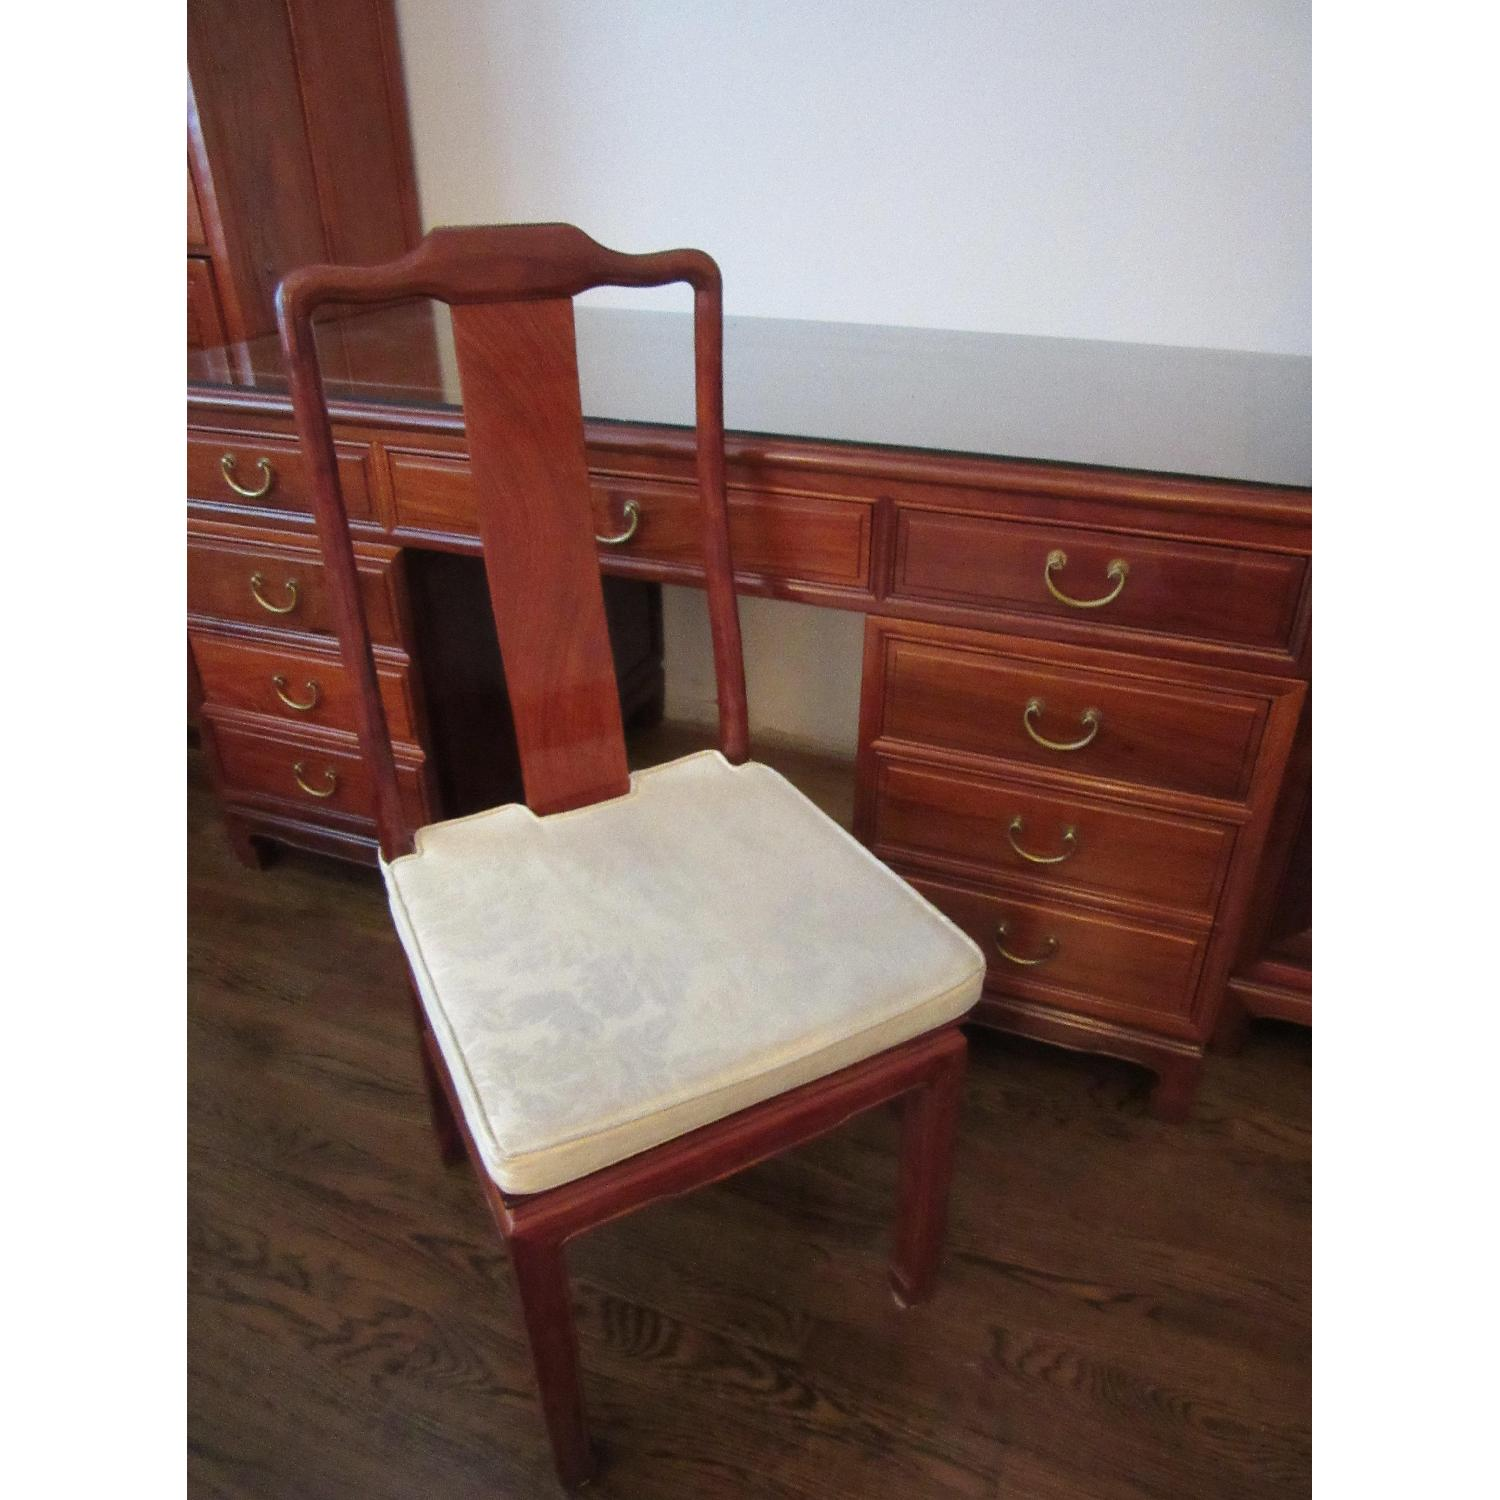 Hand Crafted Desk w/ Desk Chair - image-7